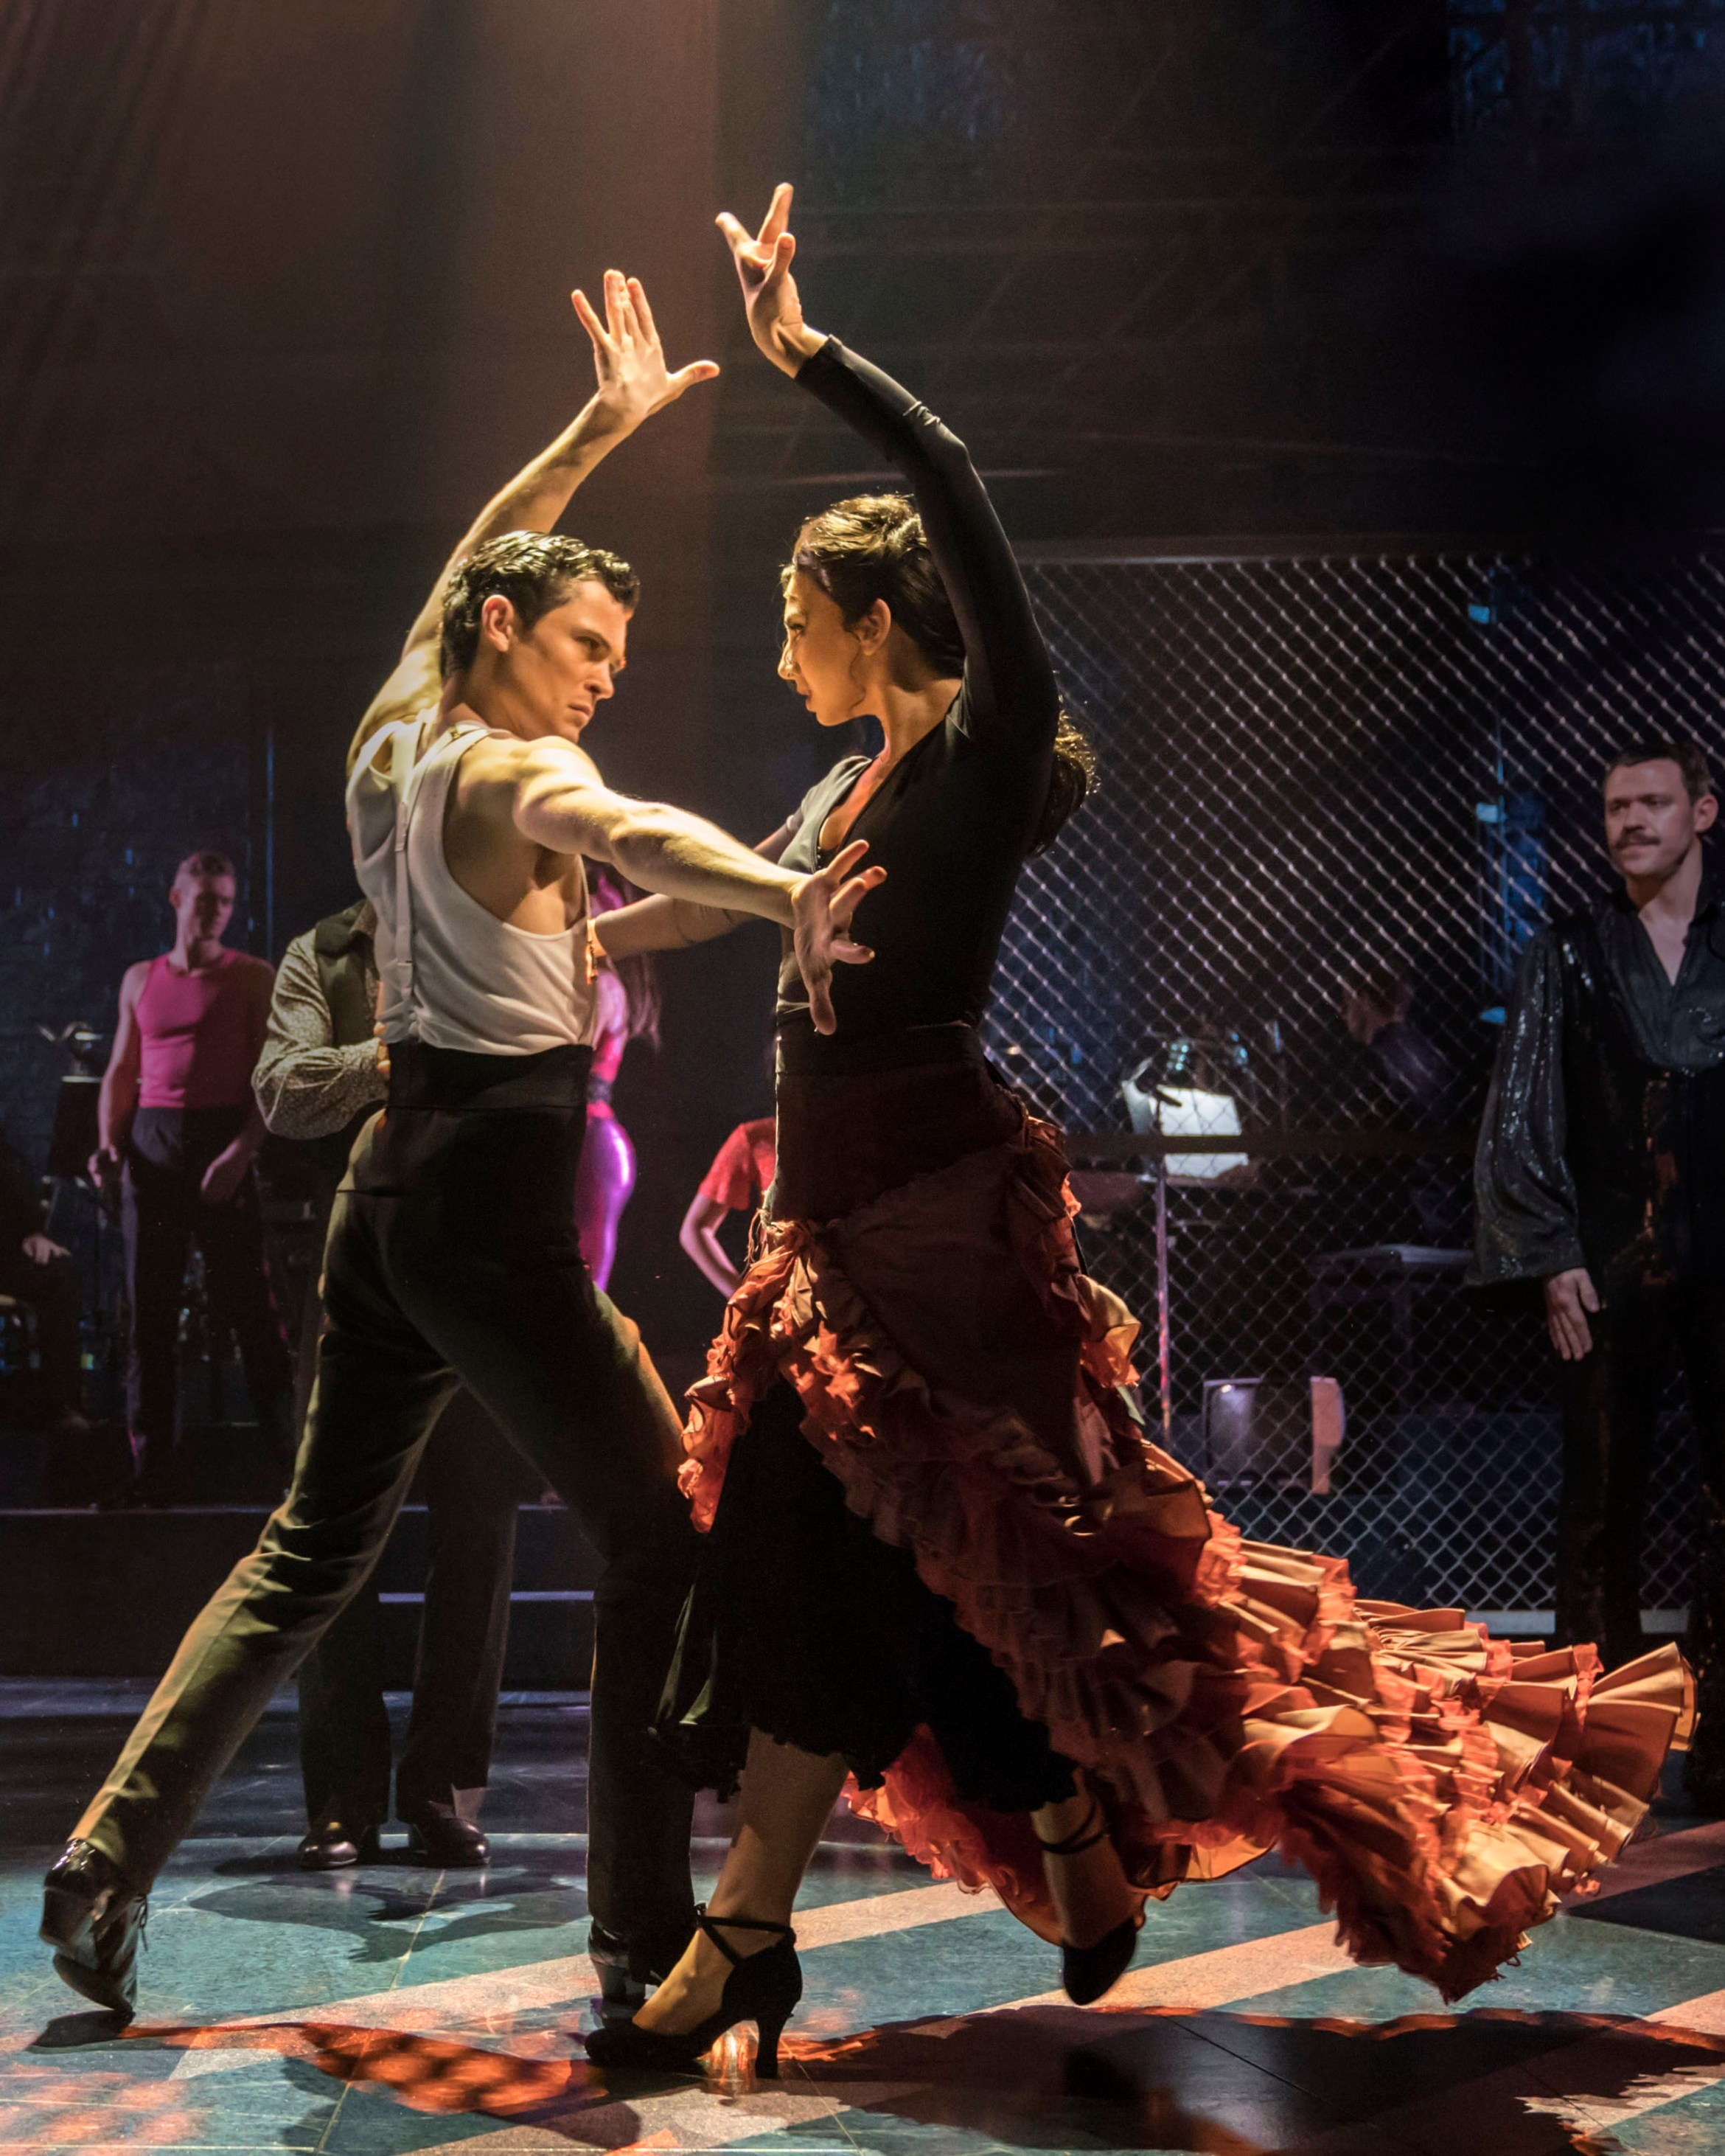 Strictly Ballroom London - Scott & Fran Paso Doble (Jonny Labey & Zizi Strallen) - photo by Johan Persson.jpg